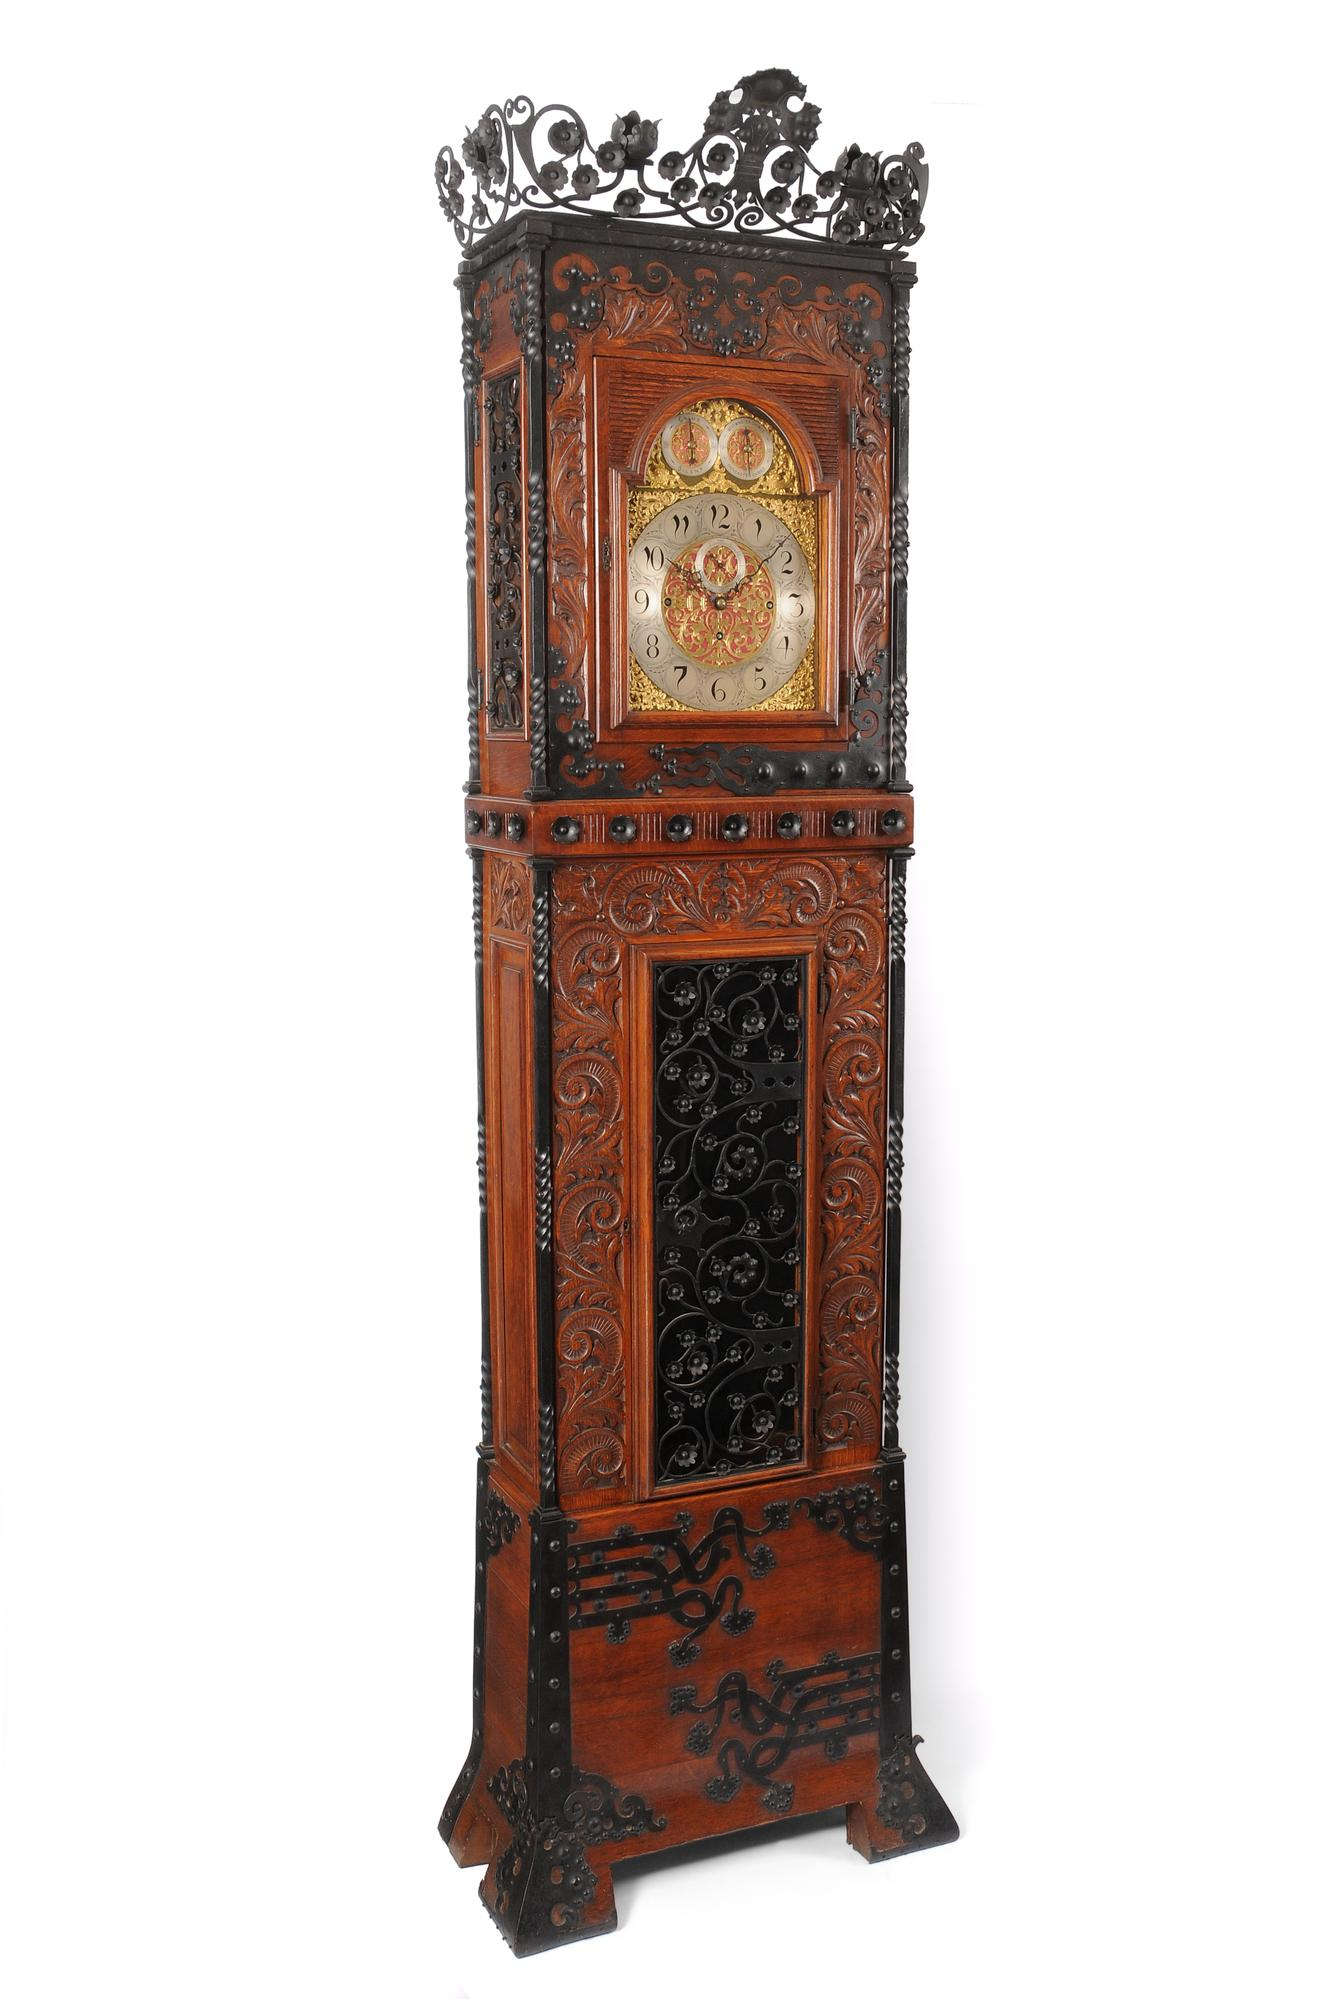 Tall Aesthetic Movement Oak and Wrought Iron Case Clock 1